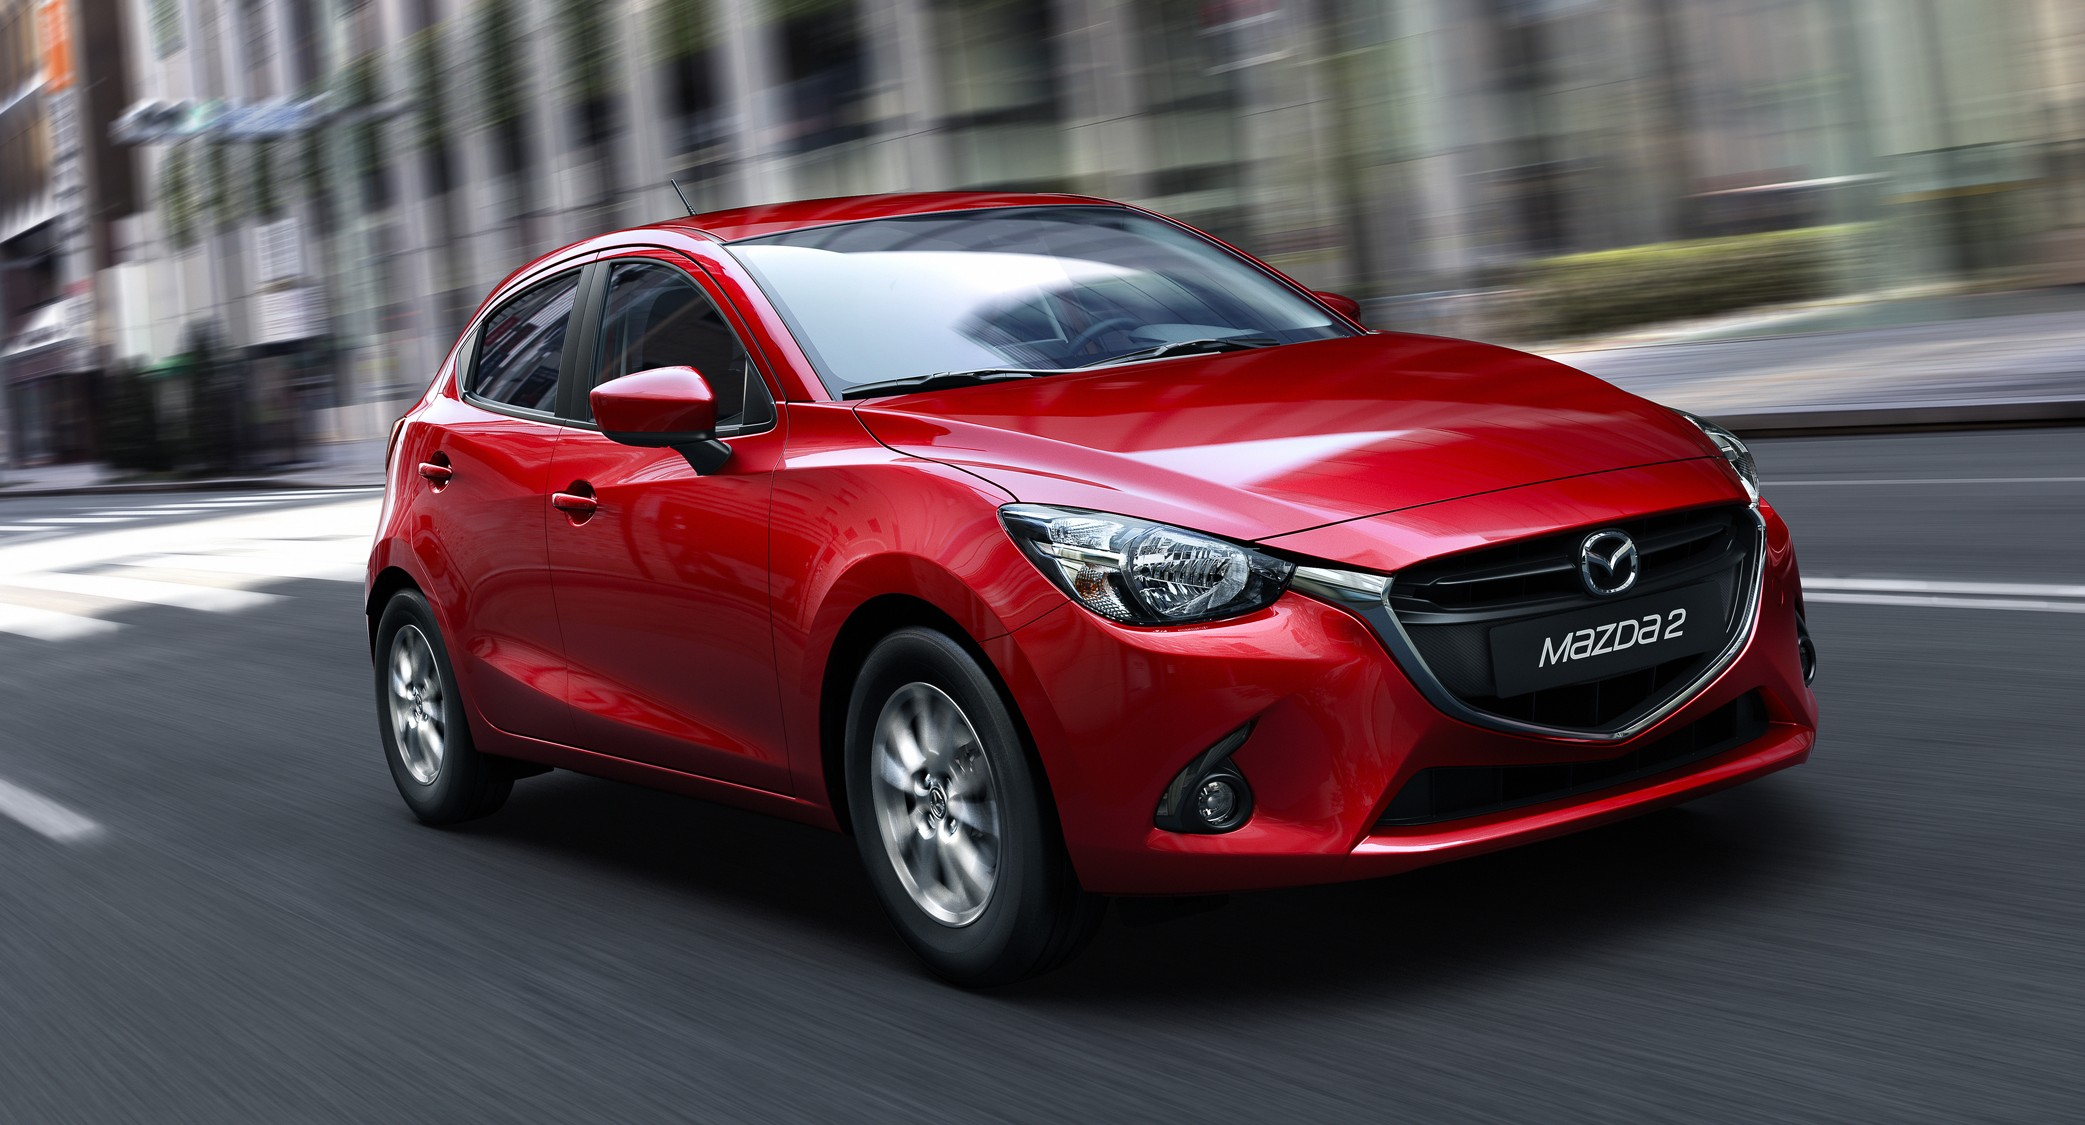 mazda 2 awarded car of the year 2014 2015 in japan. Black Bedroom Furniture Sets. Home Design Ideas